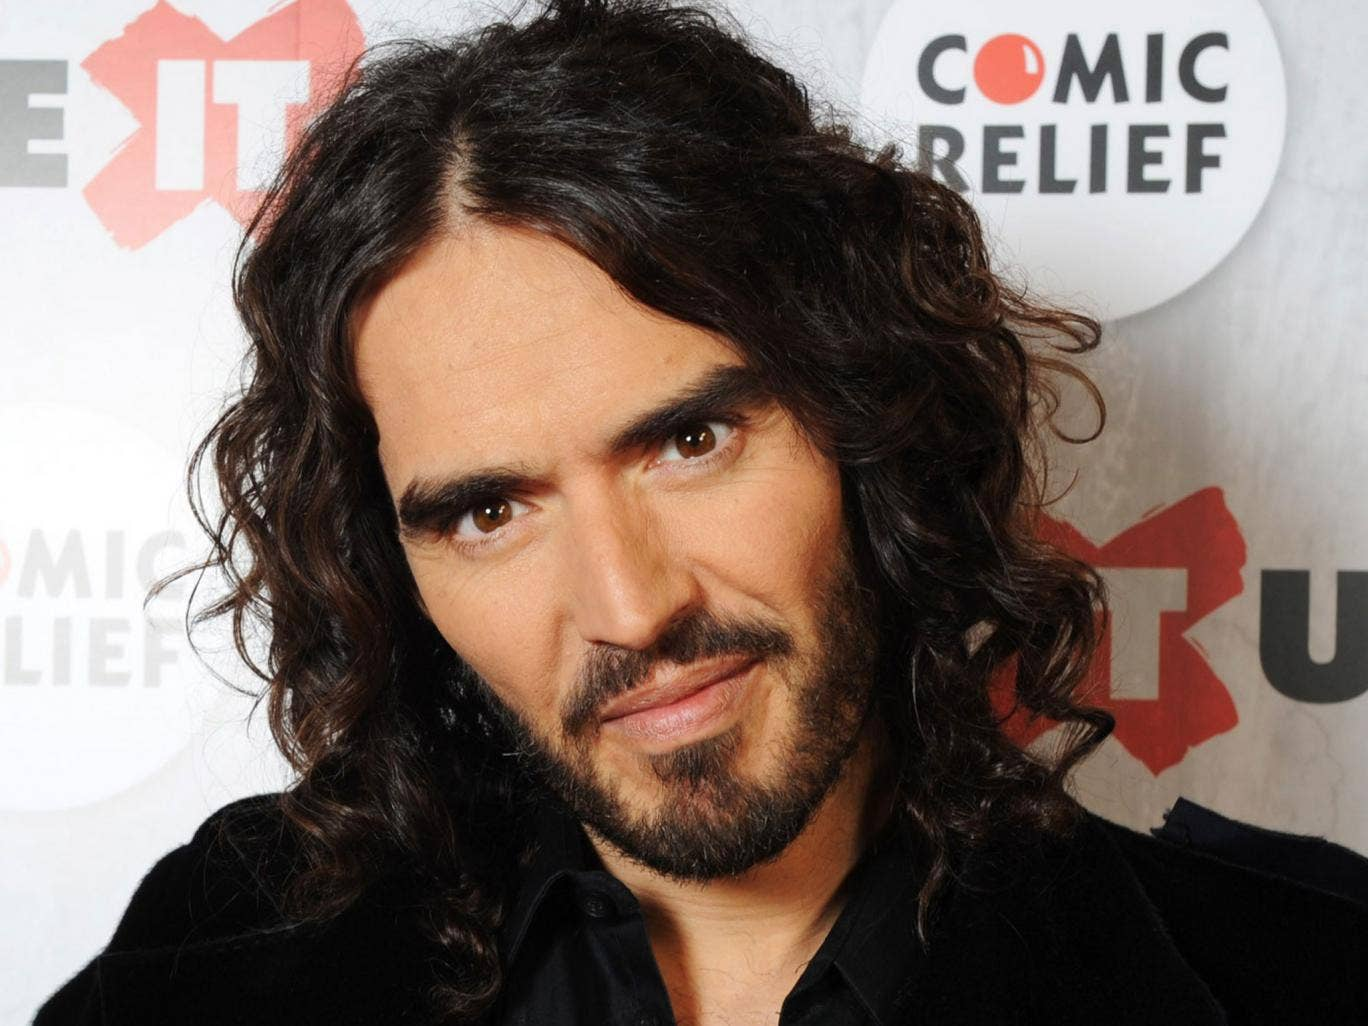 Something in the hair: Russell Brand